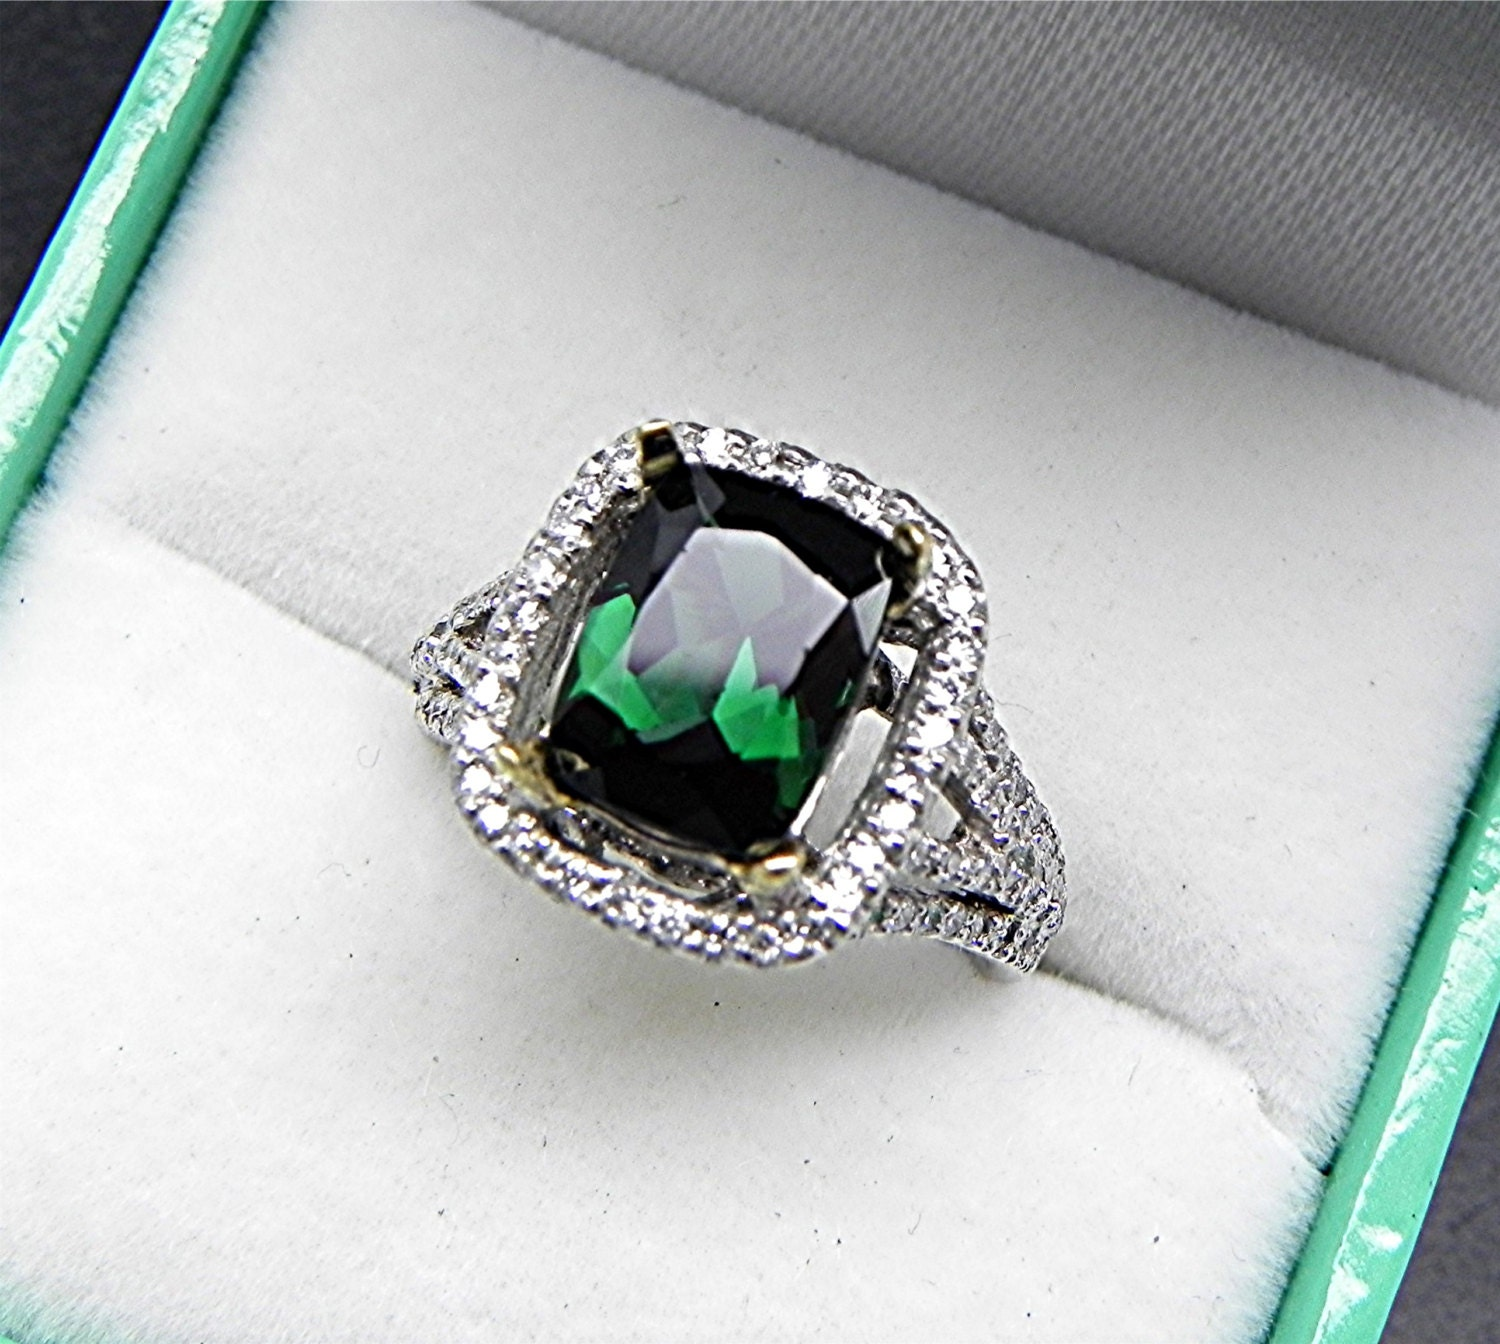 AAAA Blue Green Indicolite Tourmaline Cushion Cut 9x7mm 1.88 image 0